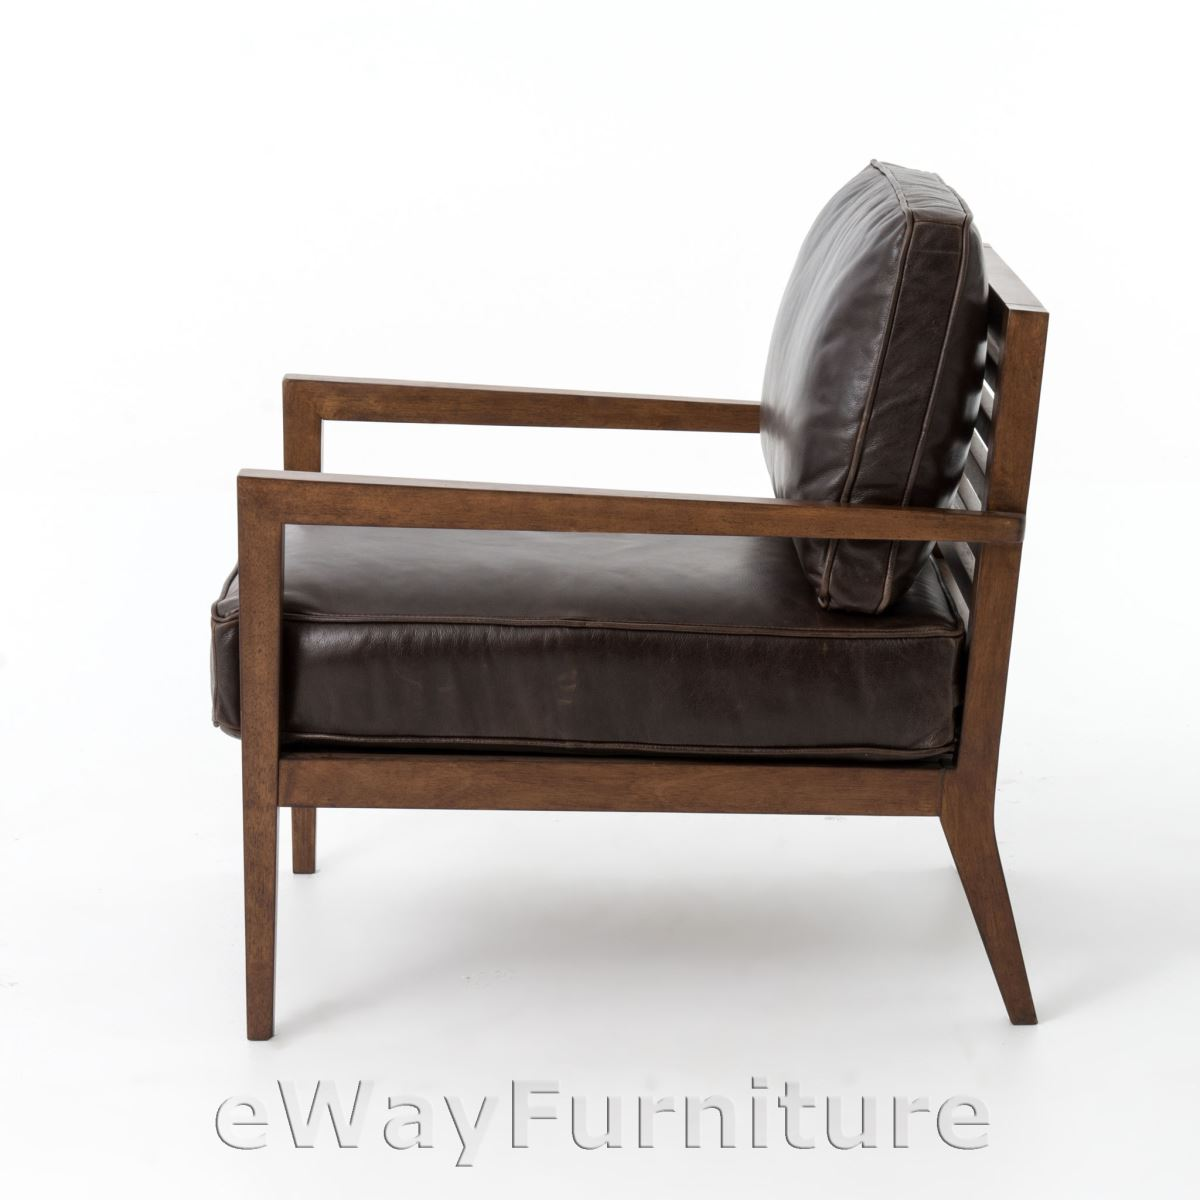 kensington laurent wood frame accent chair dark brown leather. Black Bedroom Furniture Sets. Home Design Ideas